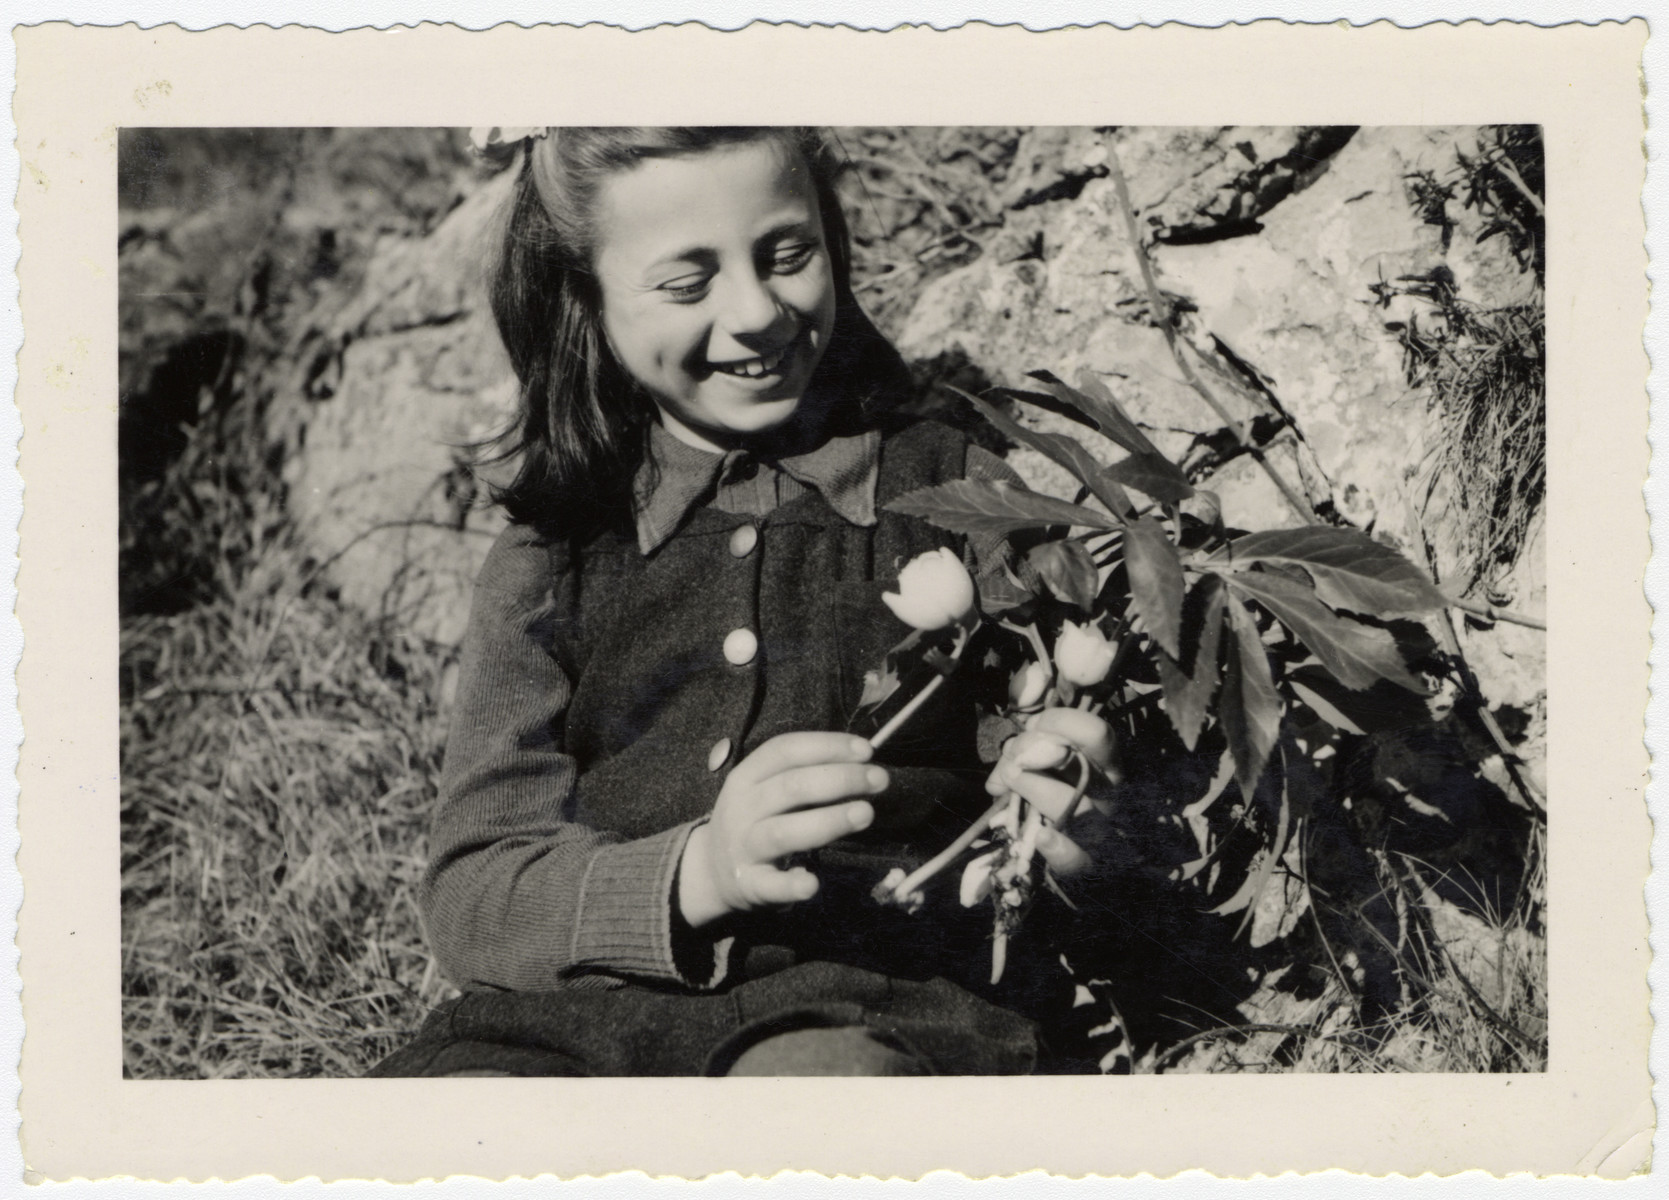 Rosian Bagriansky picks flowers on the grounds of the Selvino children's home.